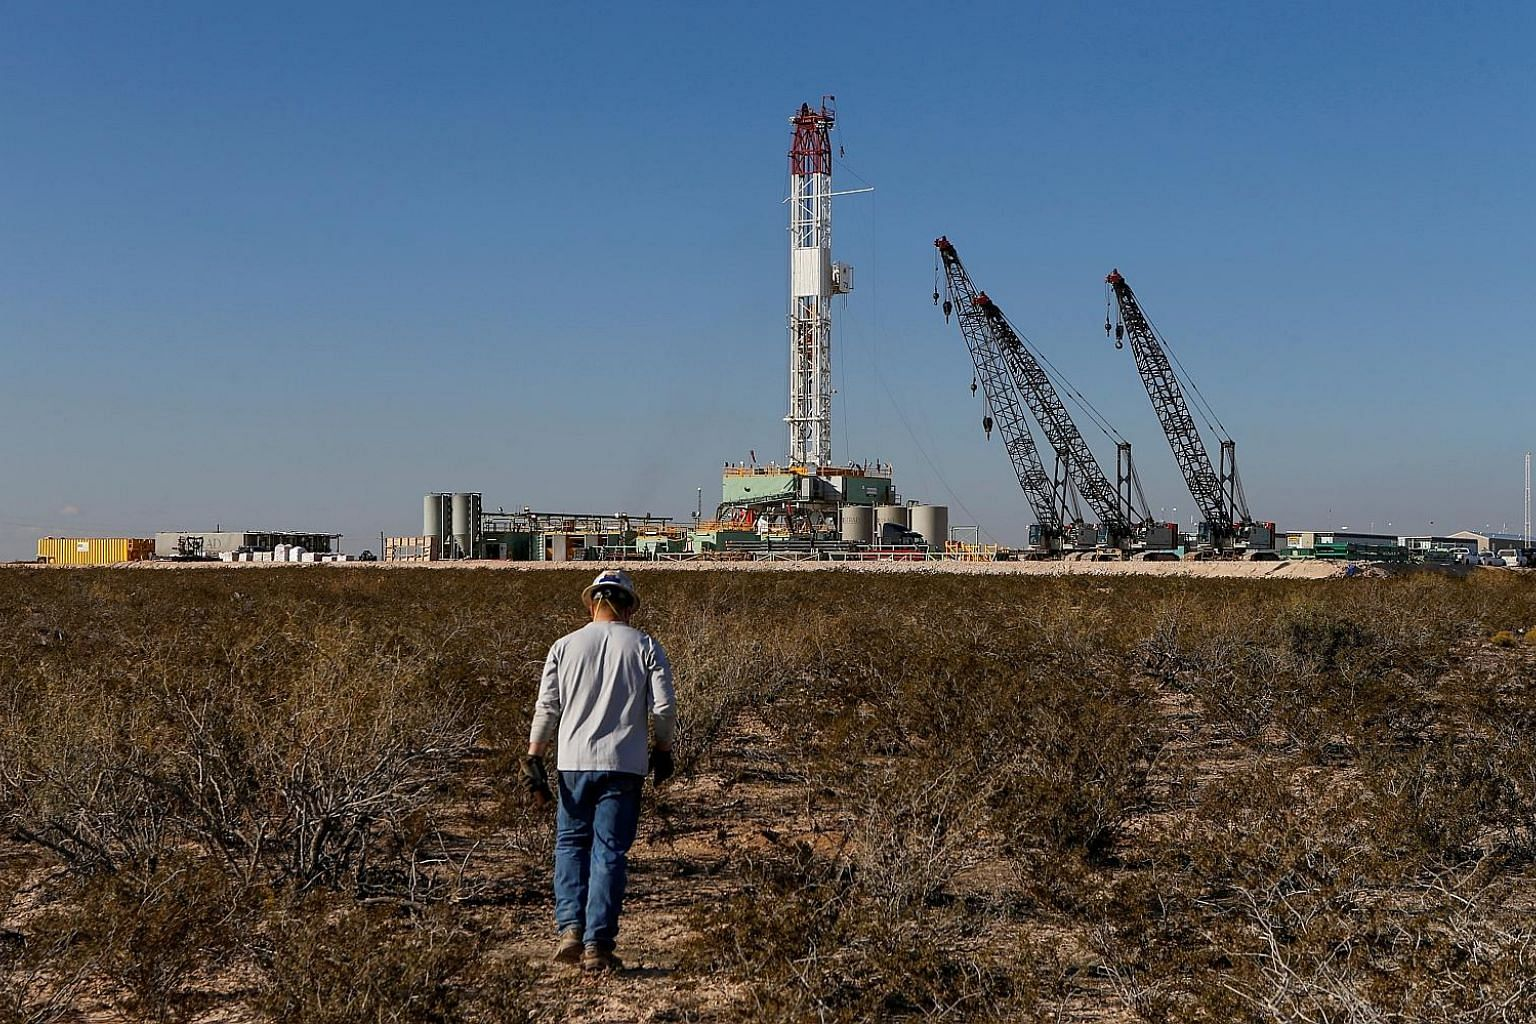 An oil drilling rig in Loving County, Texas, last year. The oil price collapse is reverberating across the industry, with crude explorers shutting down 13 per cent of the American drilling fleet last week.